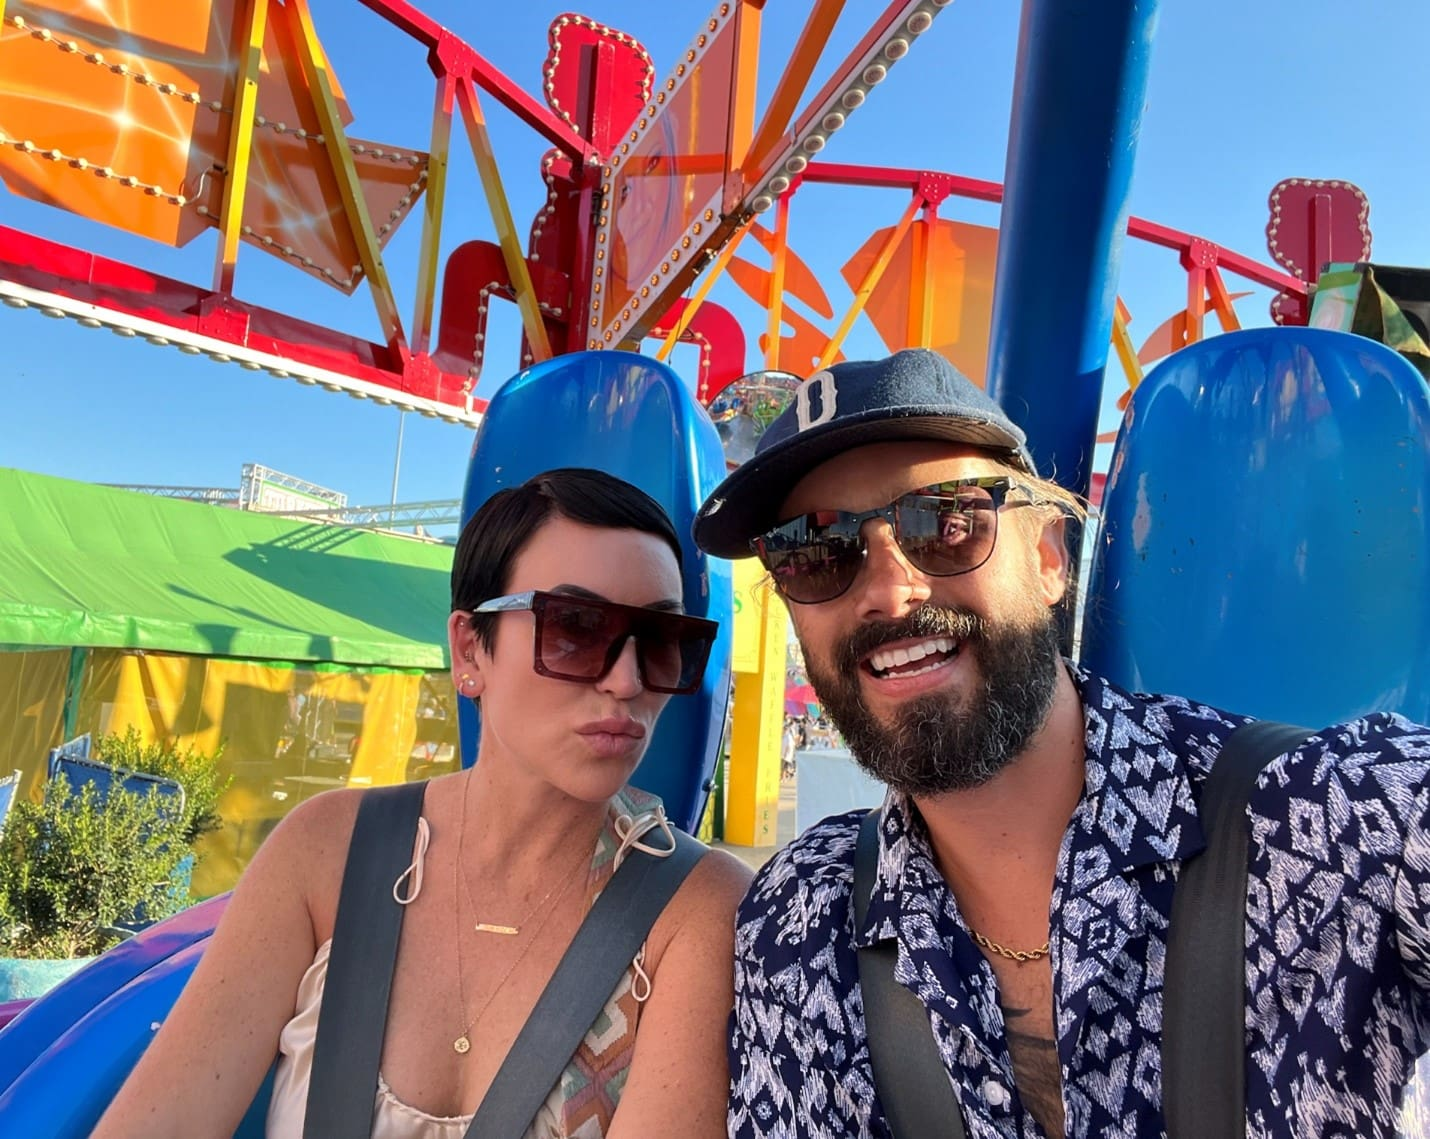 lady and man on theme park ride